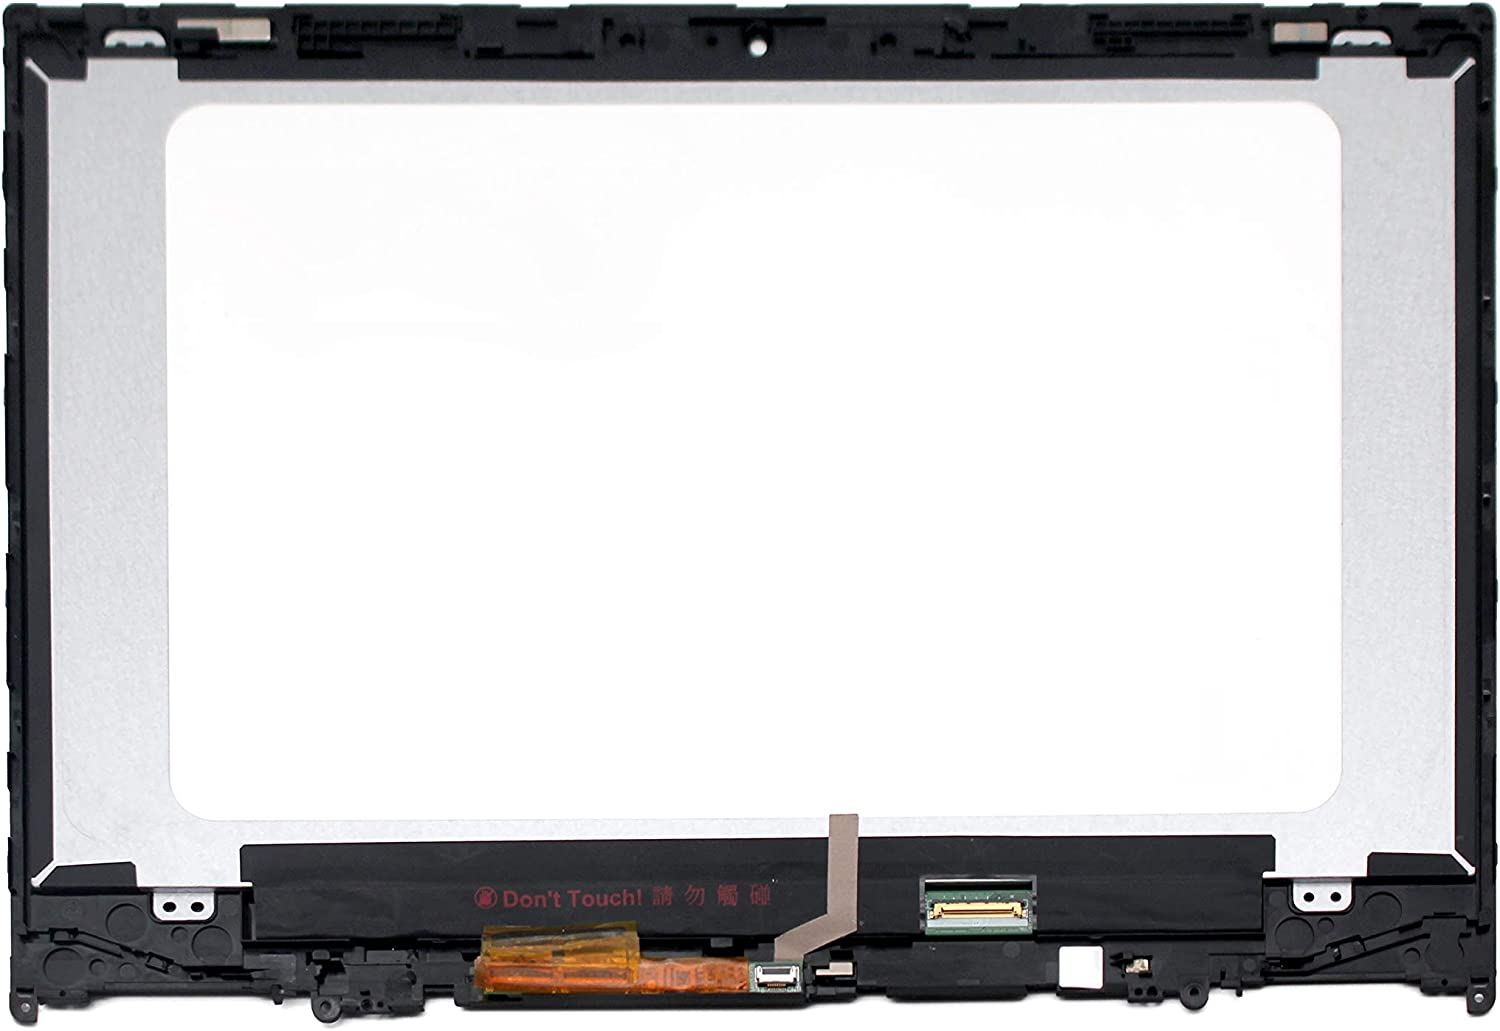 LCDOLED Replacement 14.0 inches FullHD 1080P IPS LED LCD Display Touch Screen Digitizer Assembly with Bezel for Lenovo Flex 5-1470 80XA0002US 80XA0015US 80XA0011US 80XA000QCF 81C9000CUS